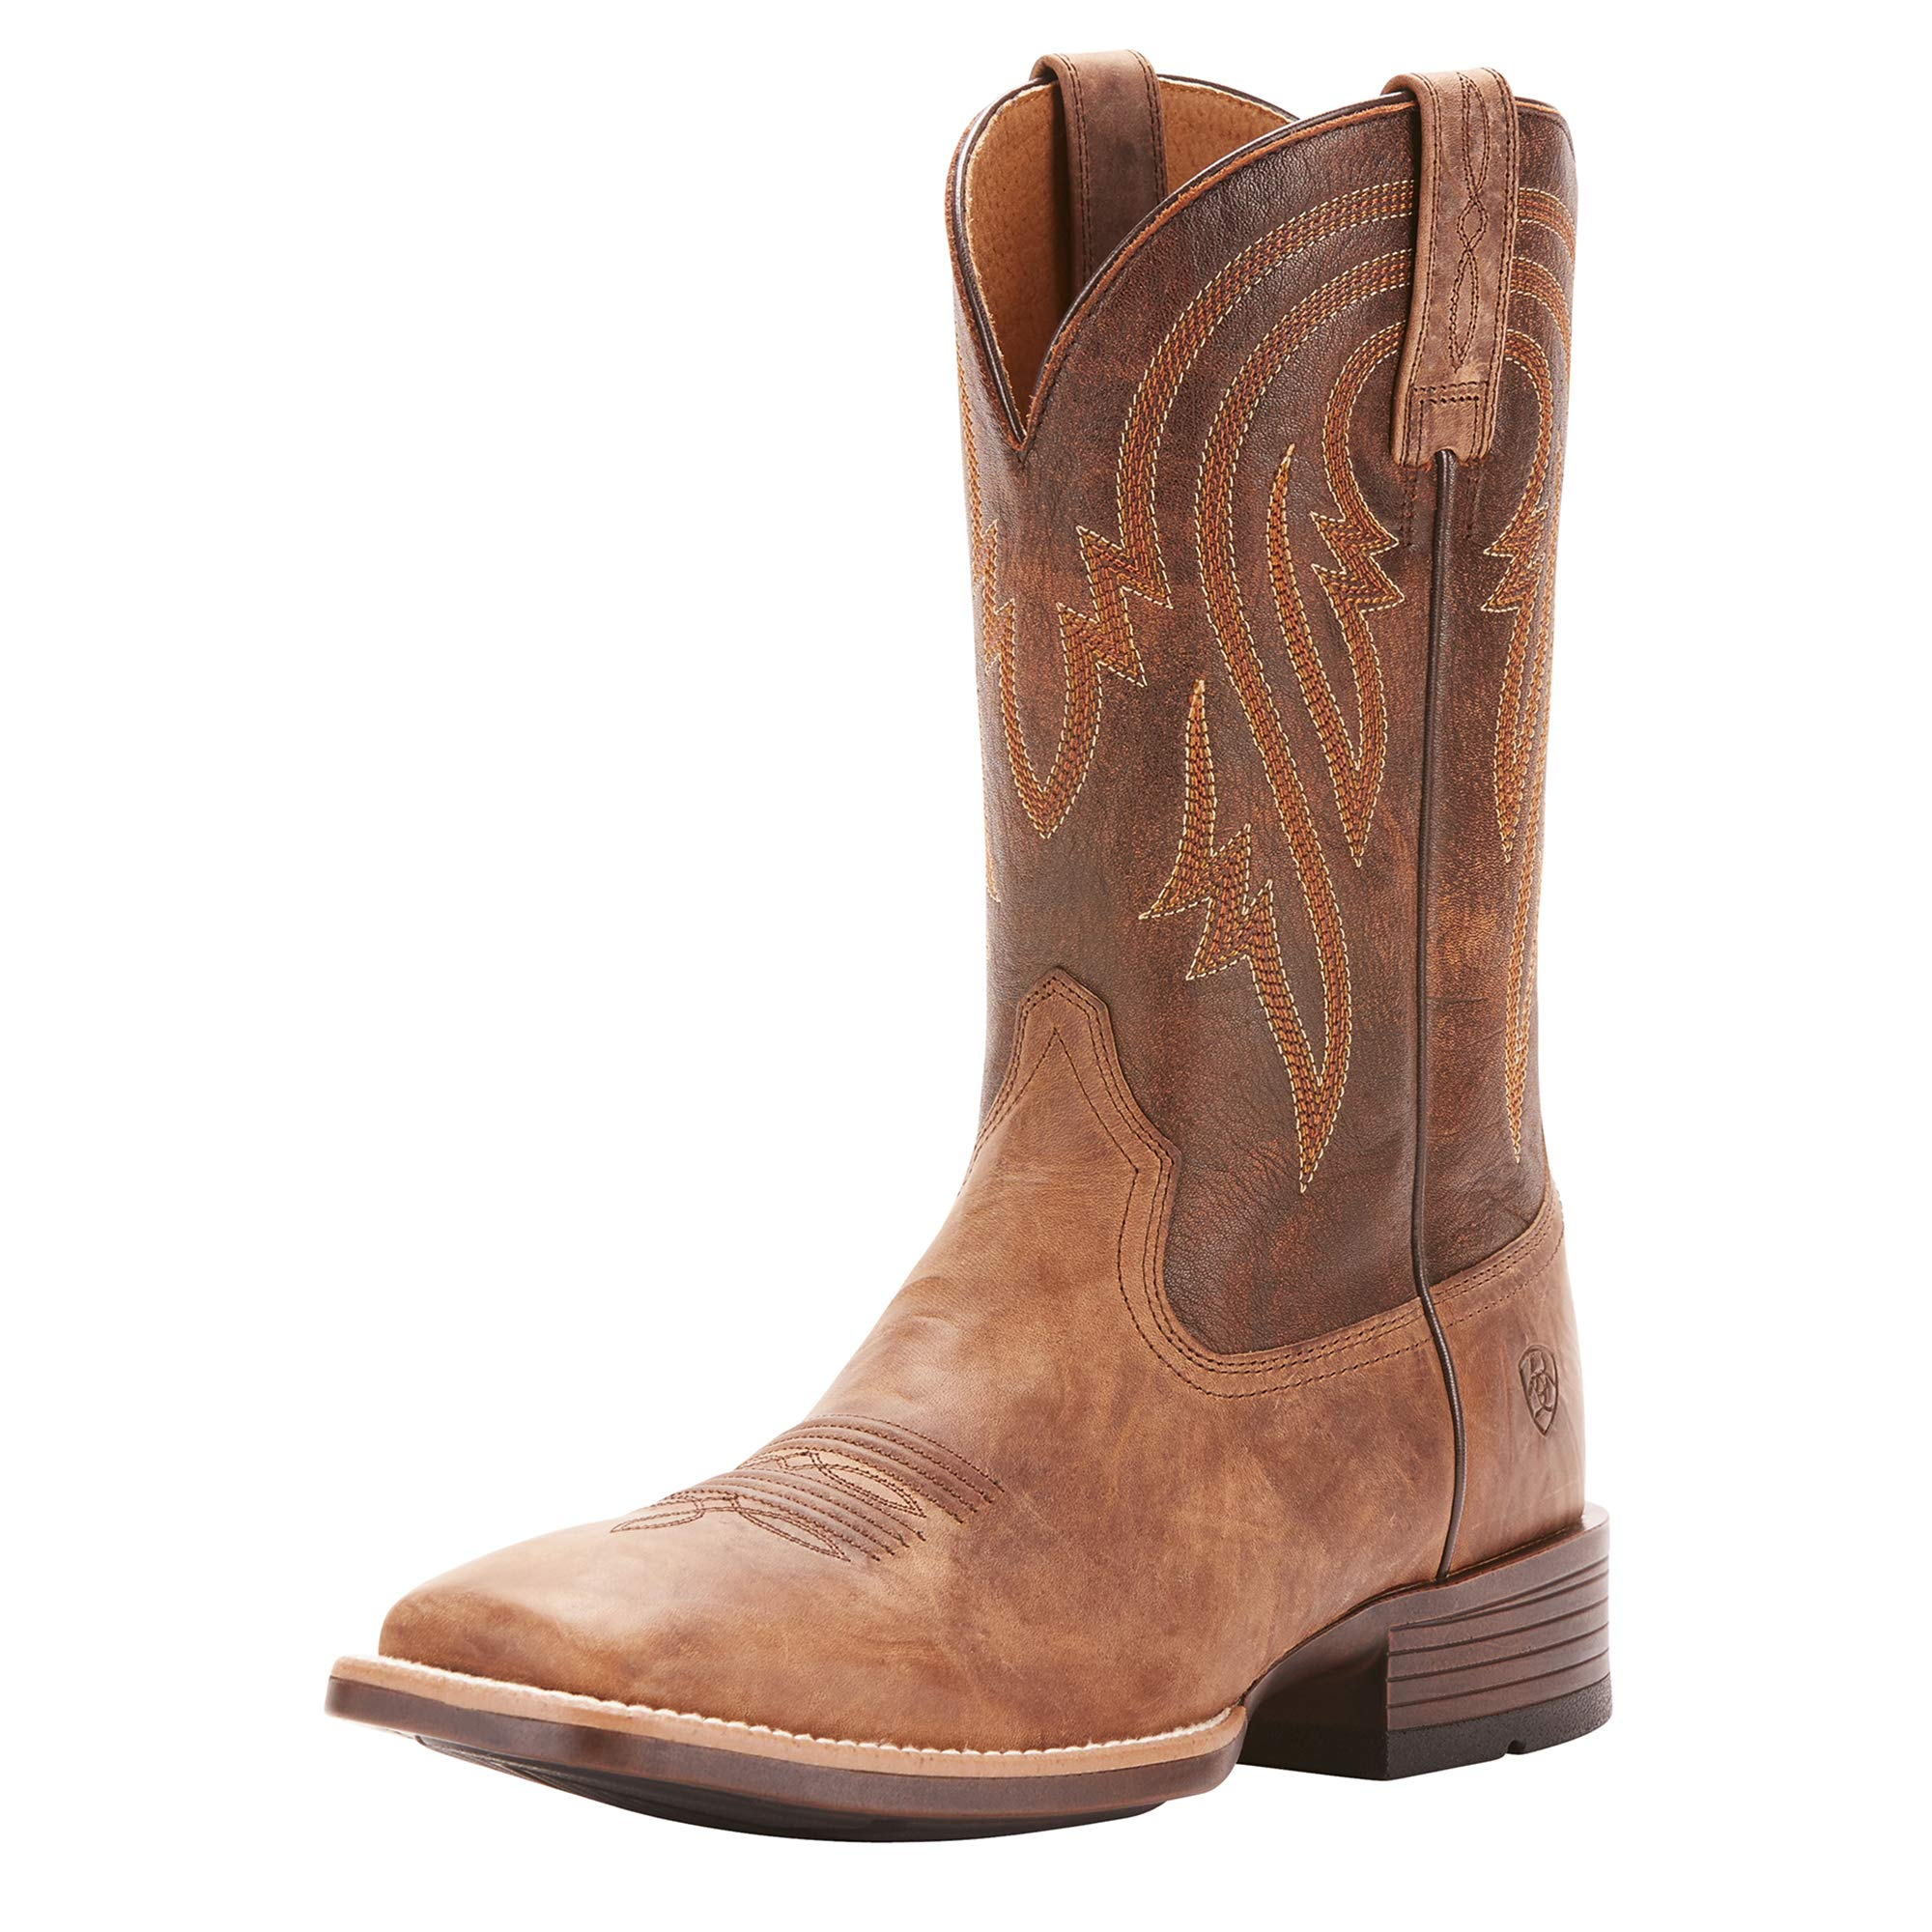 Ariat Men's Plano Western Boot, Tannin, 11 D US by ARIAT